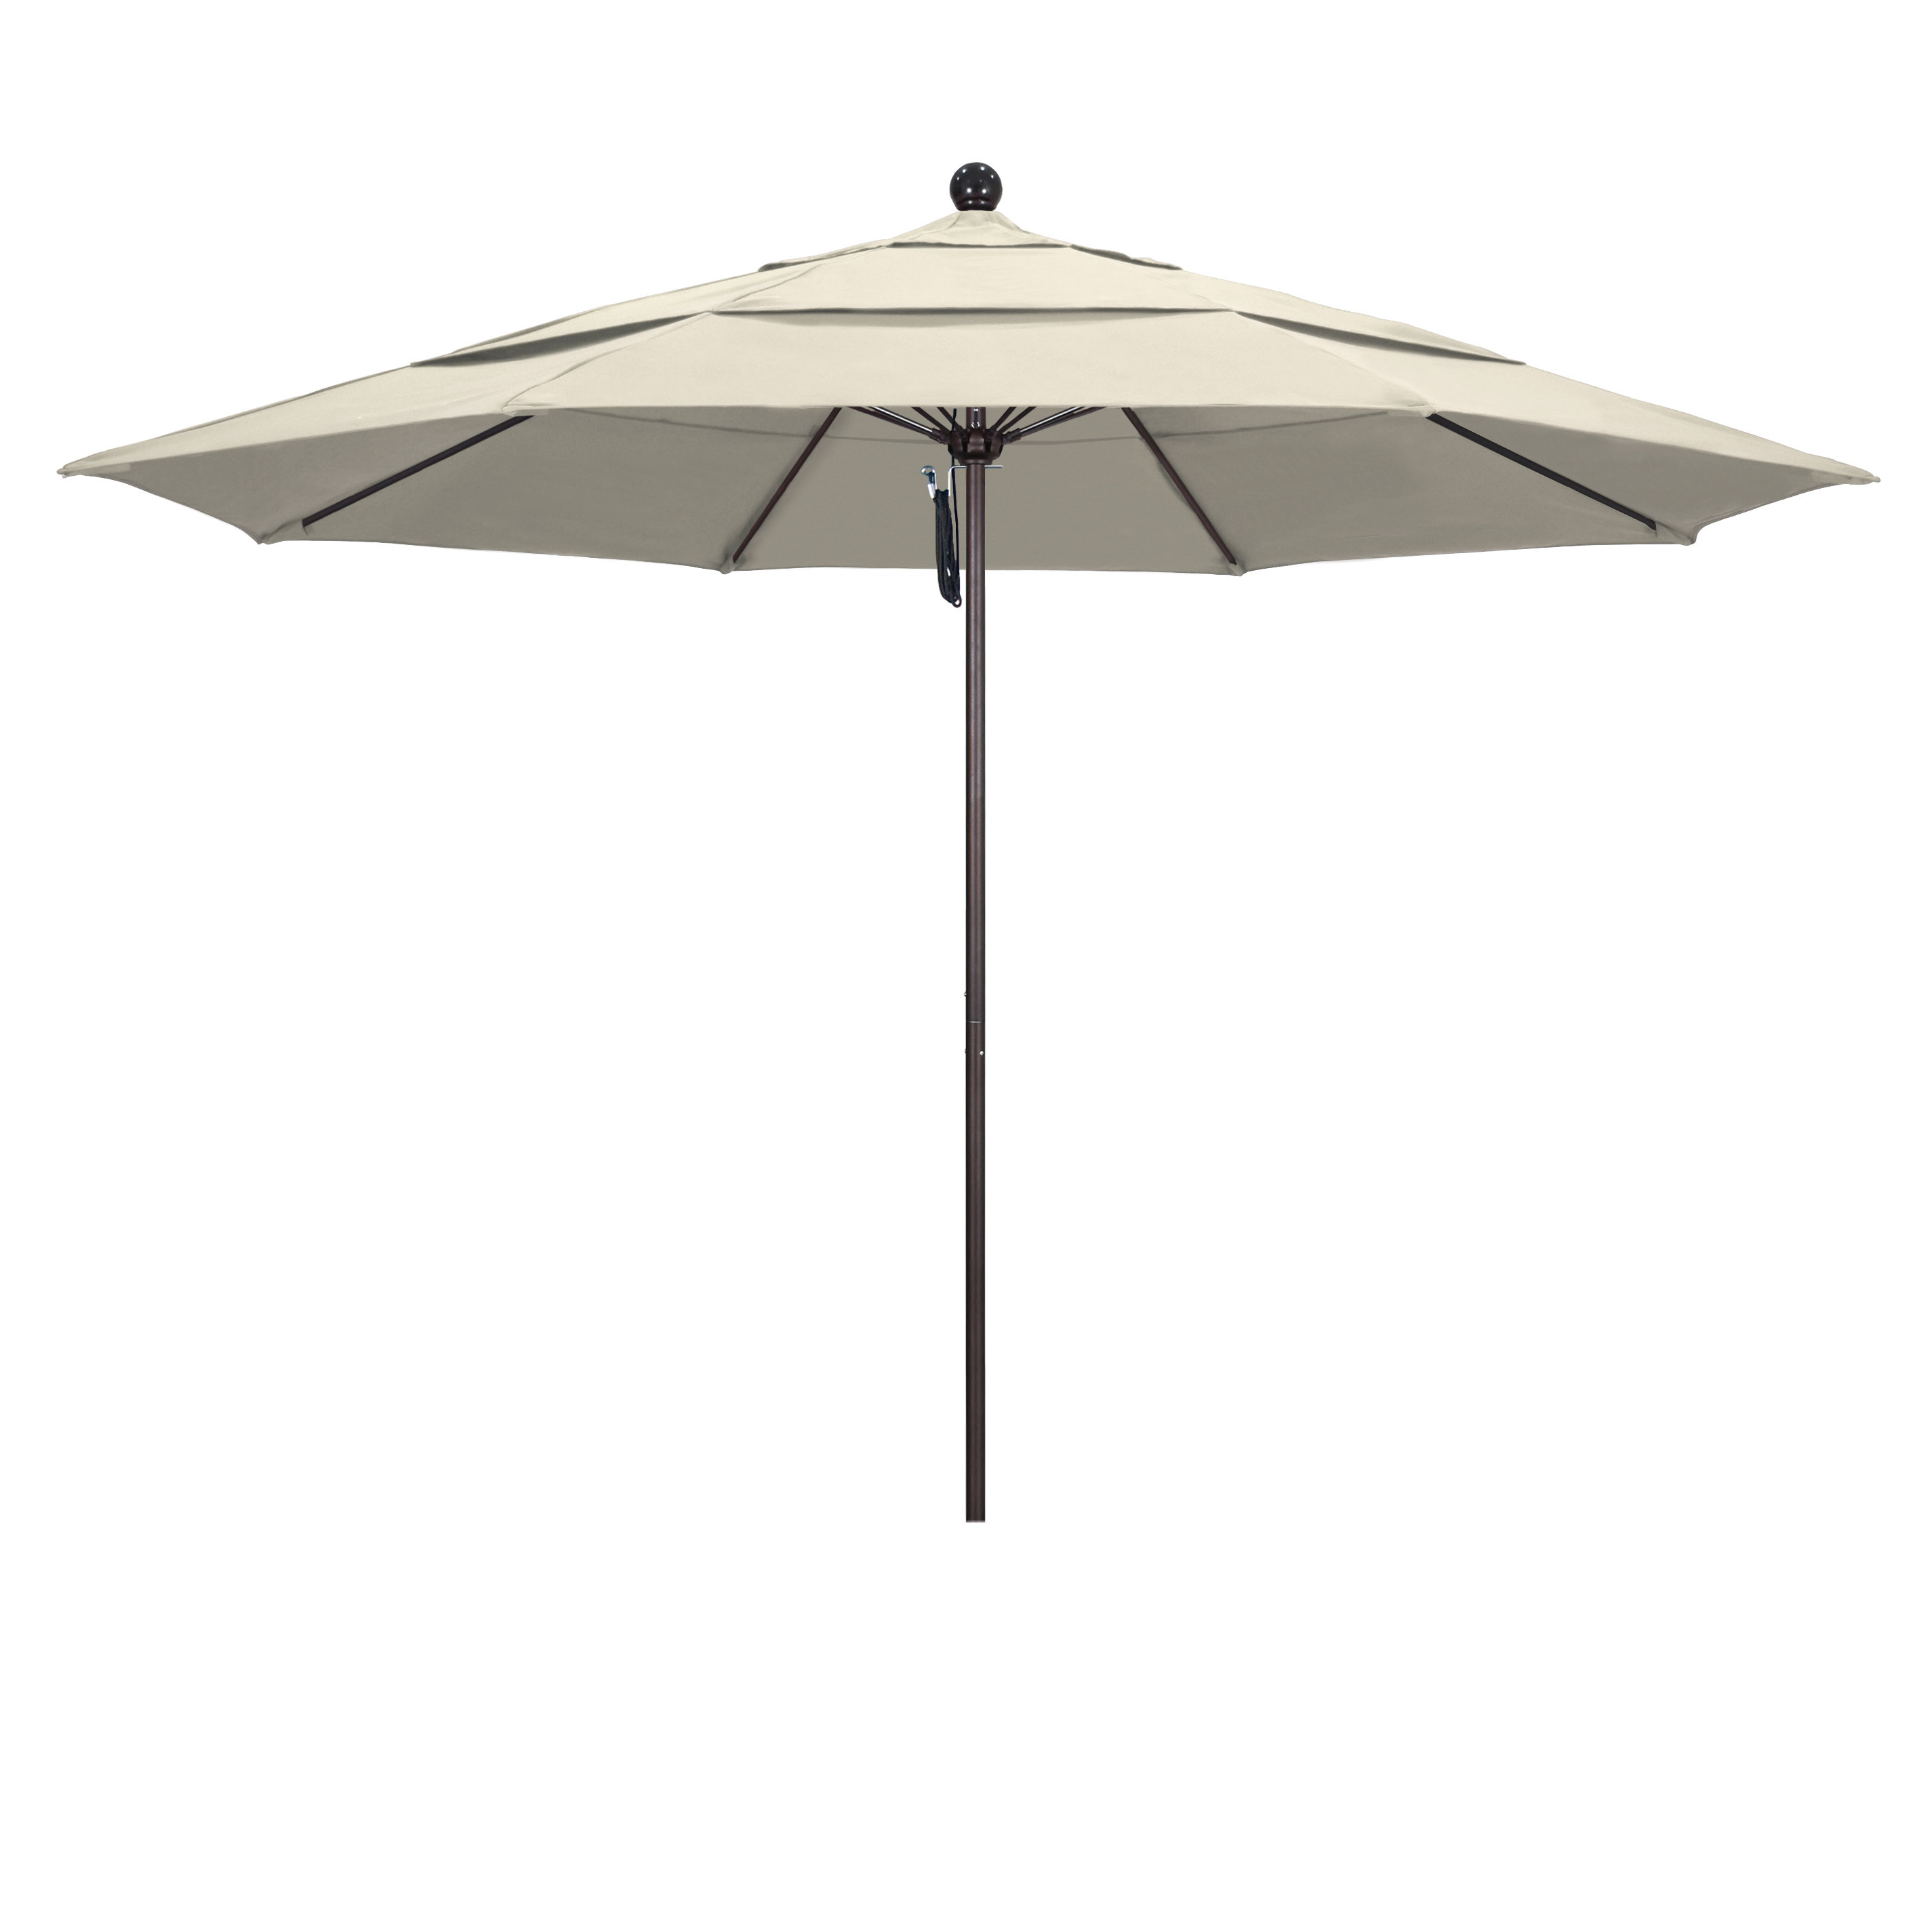 Duxbury 11' Market Umbrella In Latest Caravelle Market Sunbrella Umbrellas (View 7 of 20)